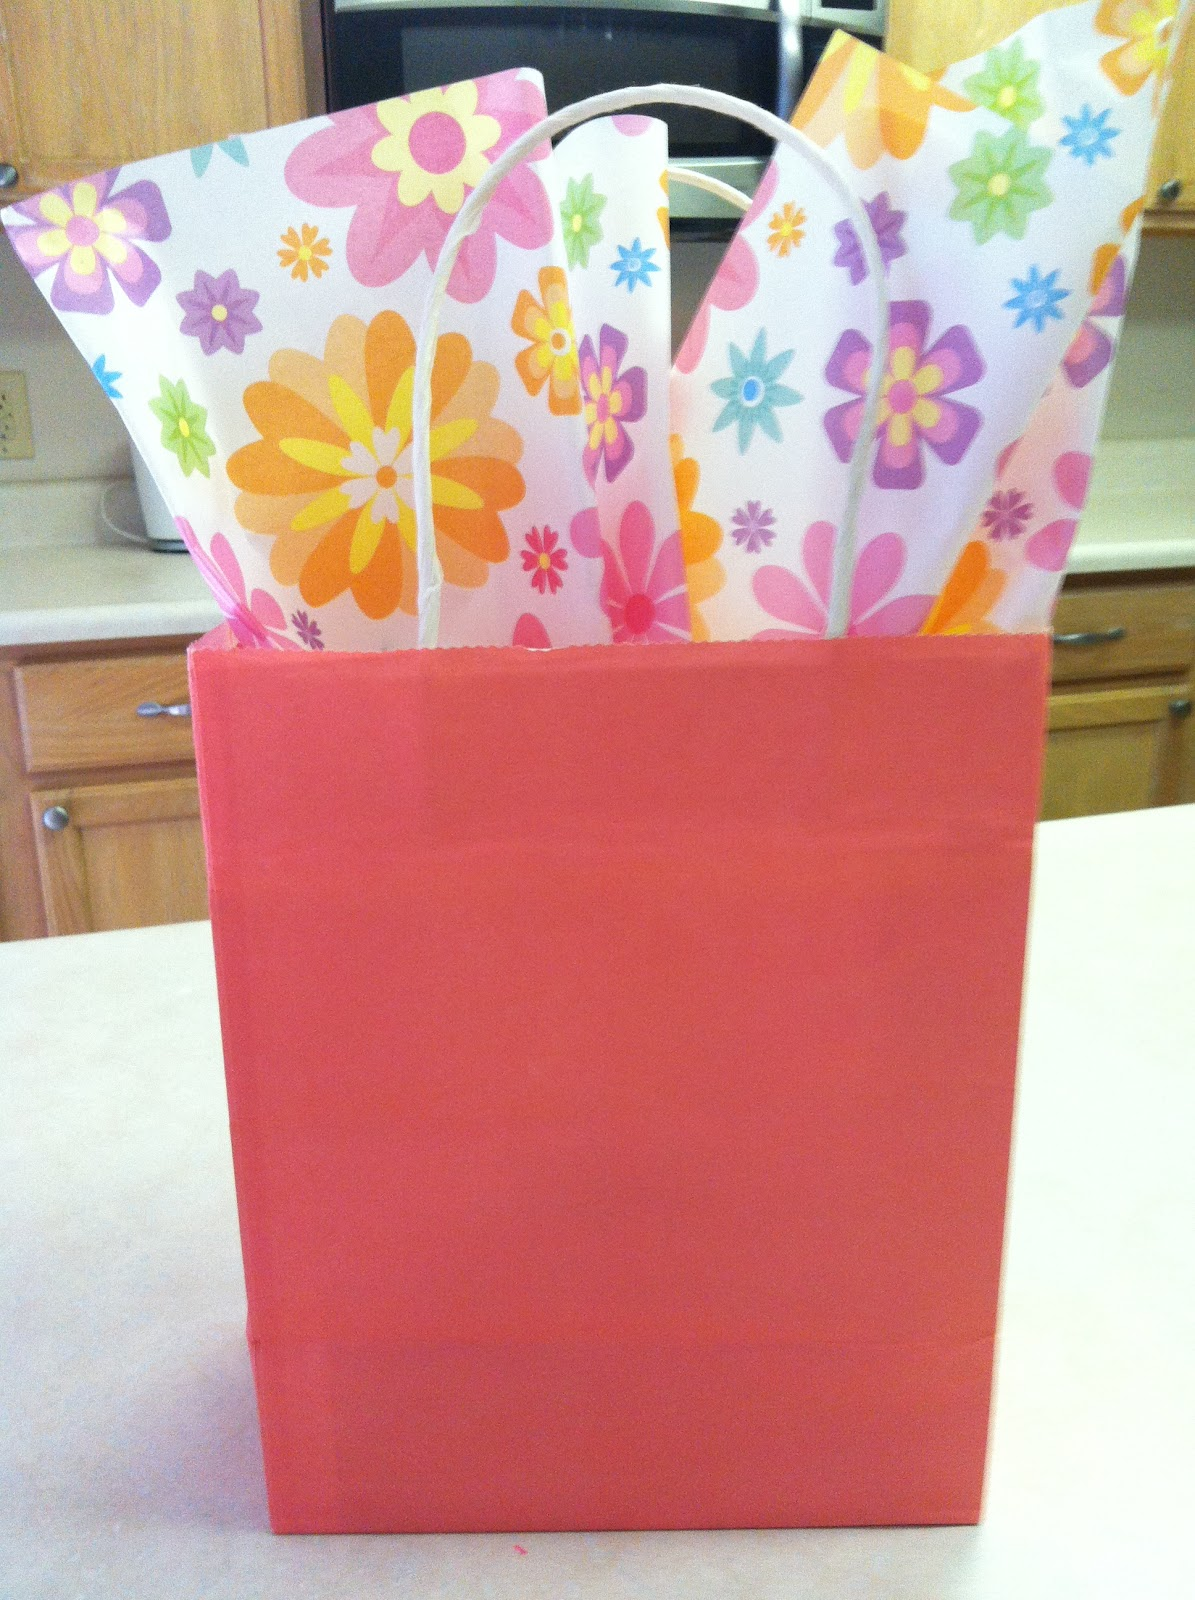 gift tissue paper 41 results found: premium bright butterfly flowers gift wrap tissue paper 16 sheets 20 x 20 new christmas poinsetta gift wrap tissue paper 16 sheets 20 x 20 each sheet.